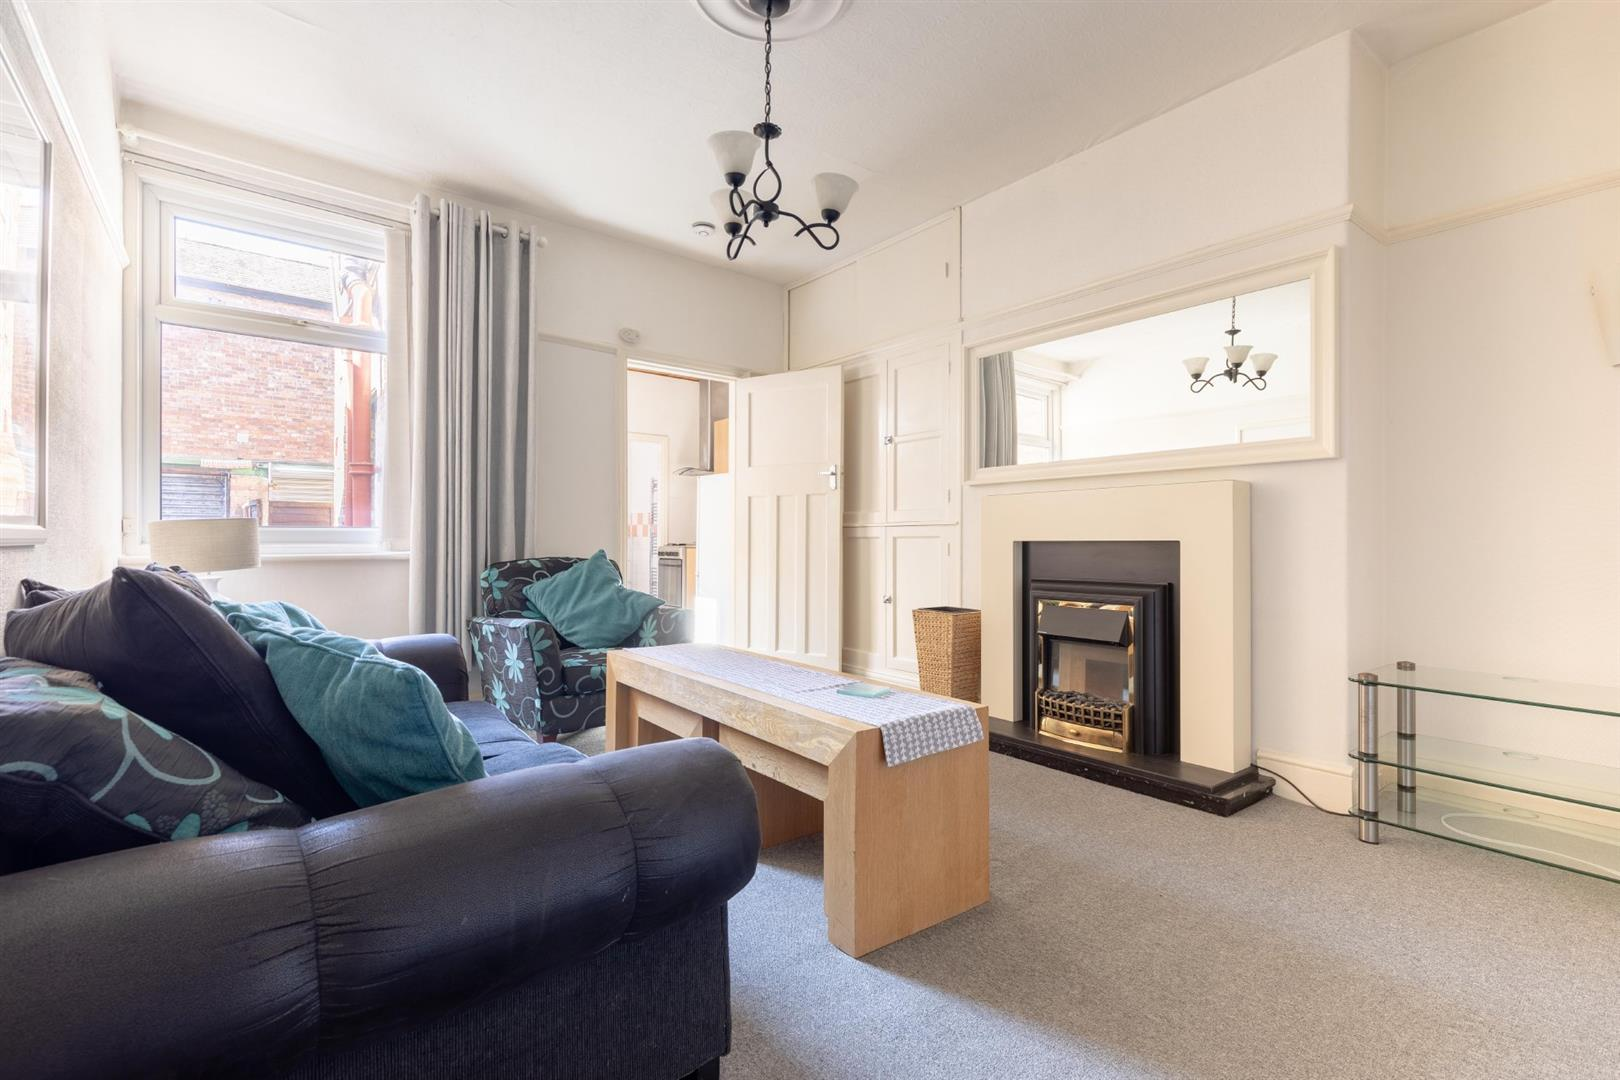 2 bed flat to rent in Newcastle Upon Tyne, NE6 5SS - Property Image 1